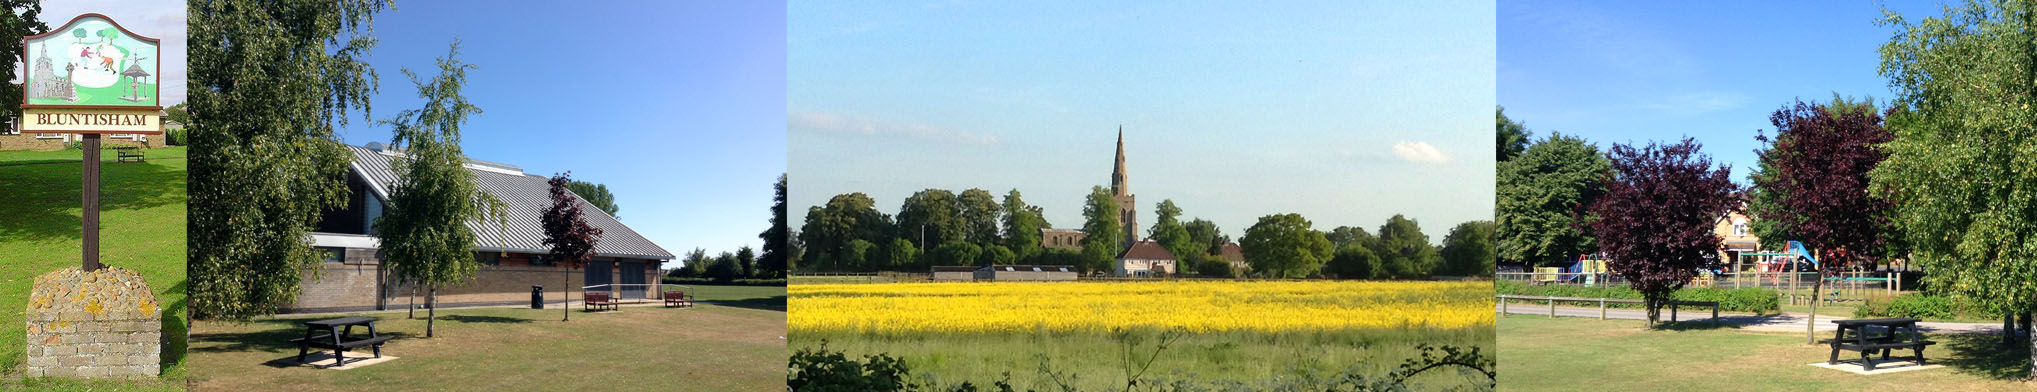 Views of Bluntisham